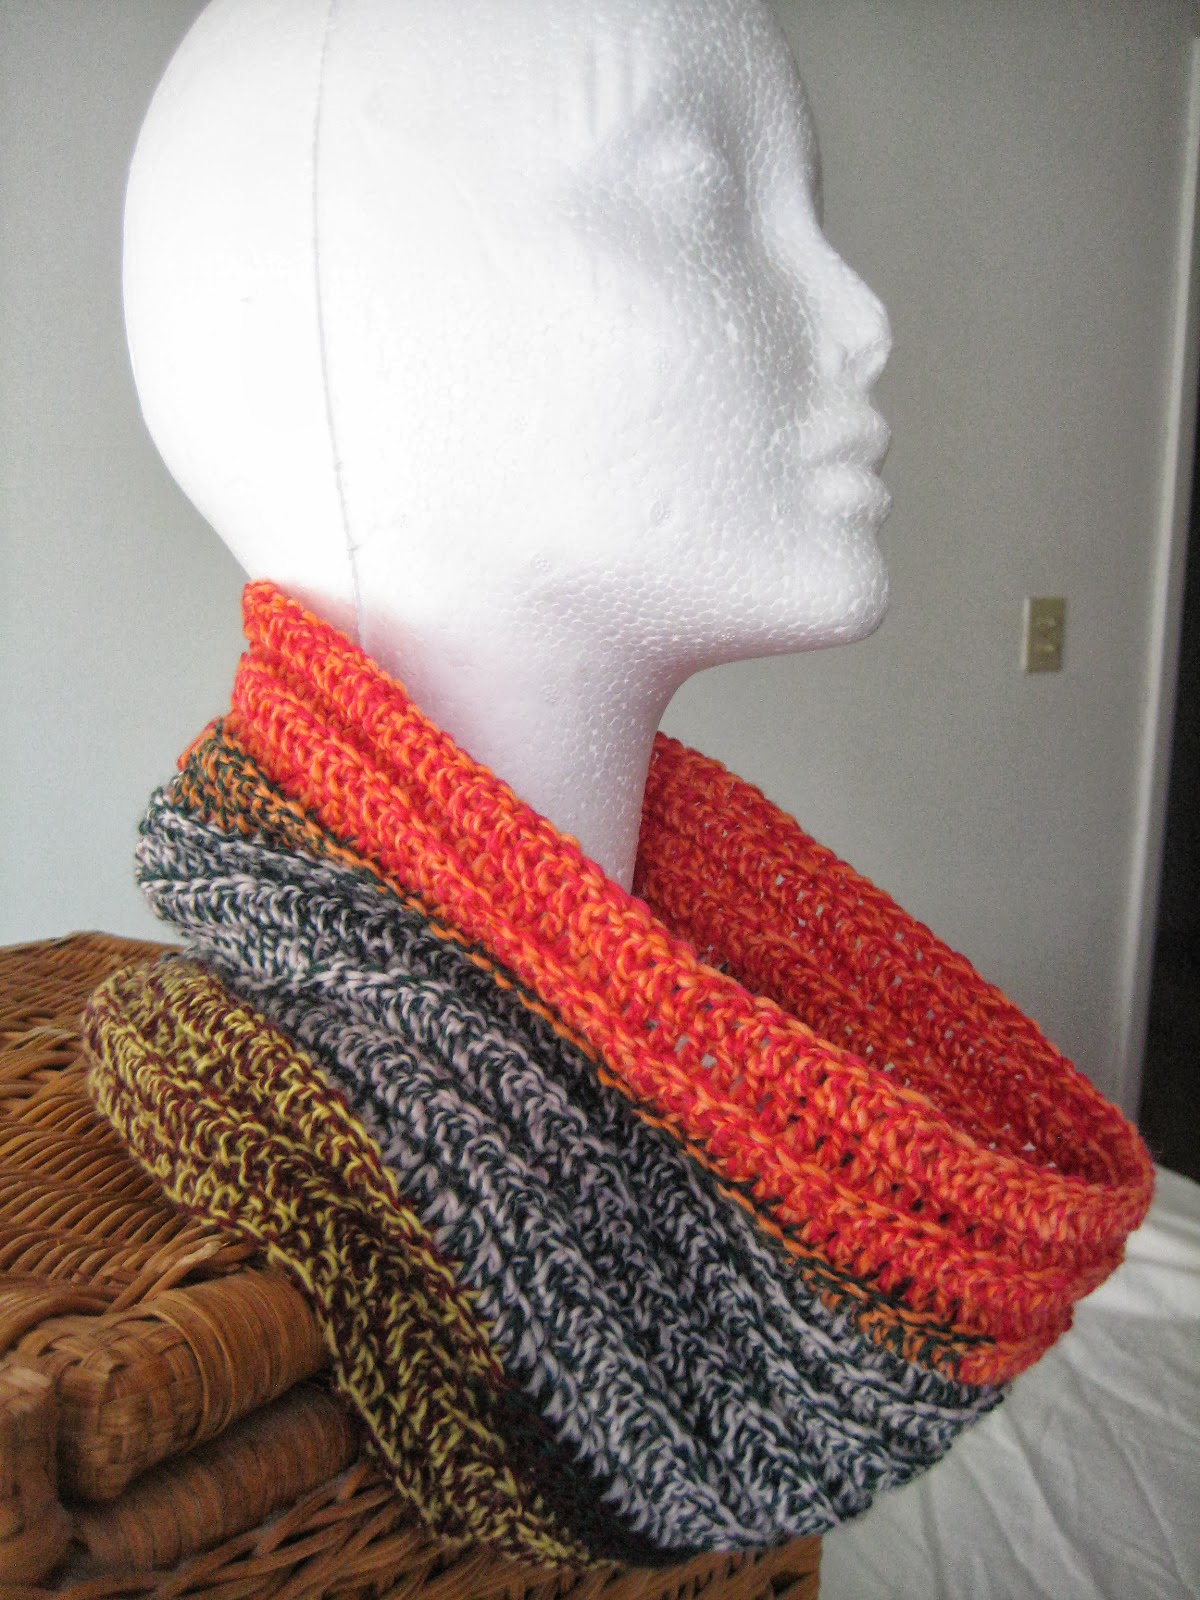 The Crochet Caretaker: Crazy Cowls! With a free pattern!